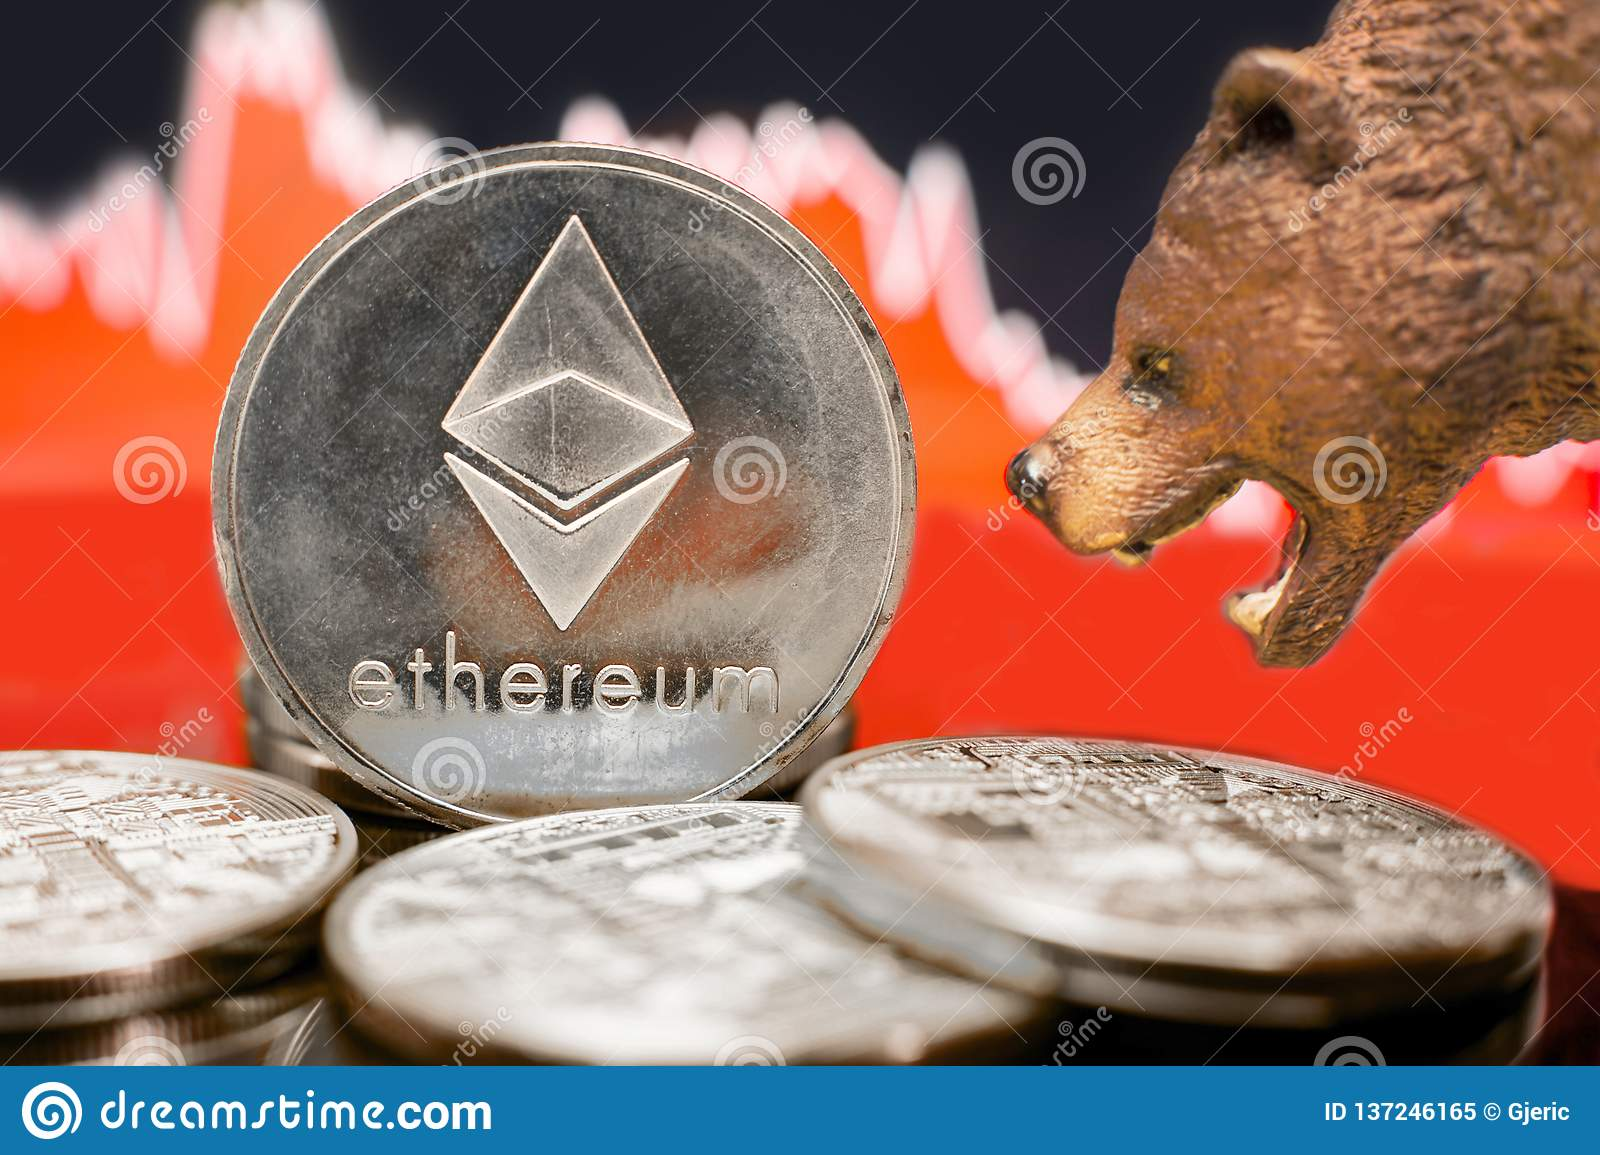 Ethereum crypto bearish price crash